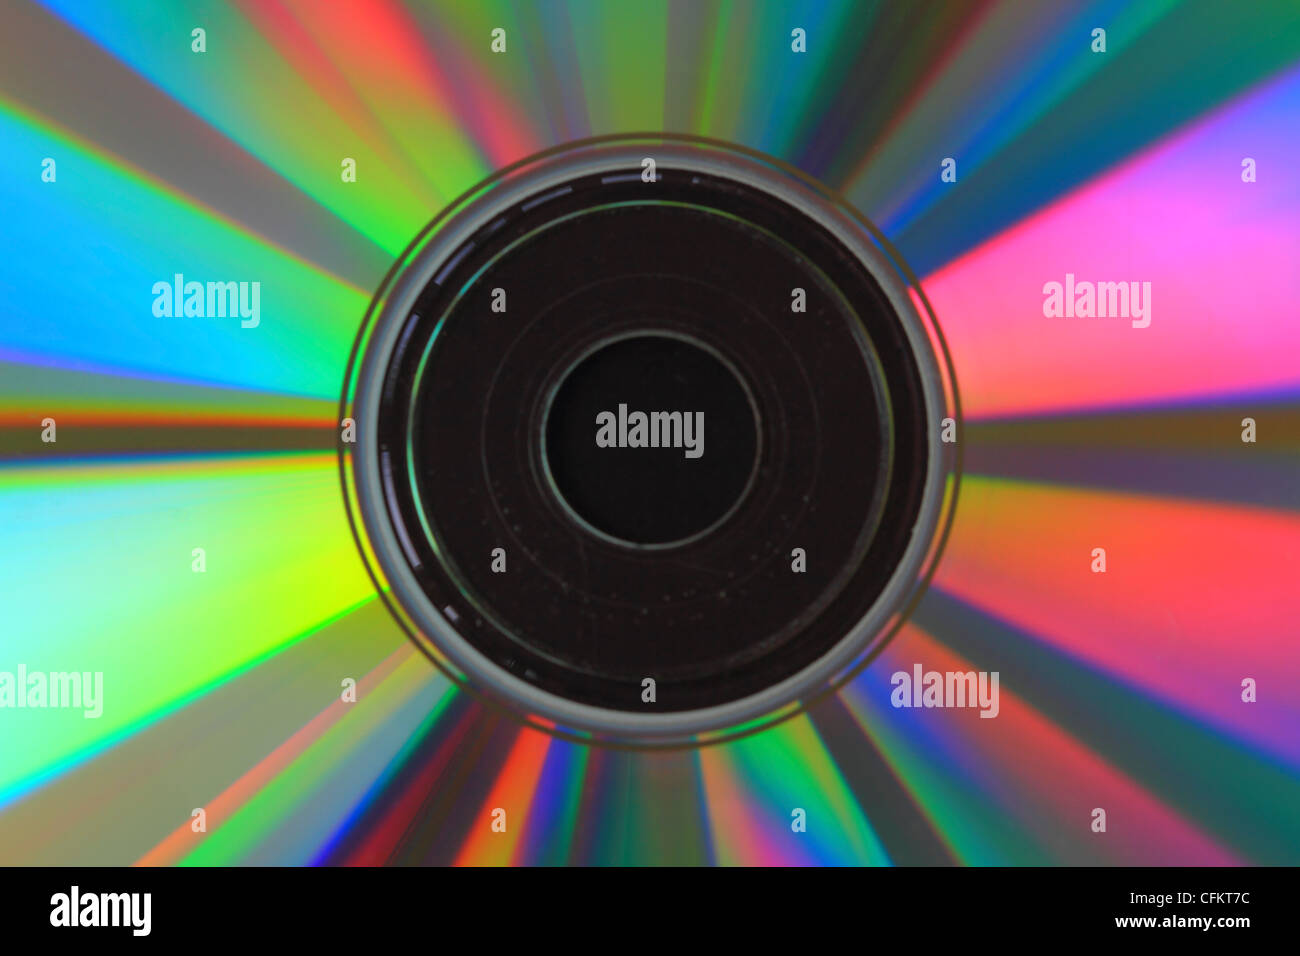 Macro picture of compact disc with mutlicoloured lights - Stock Image